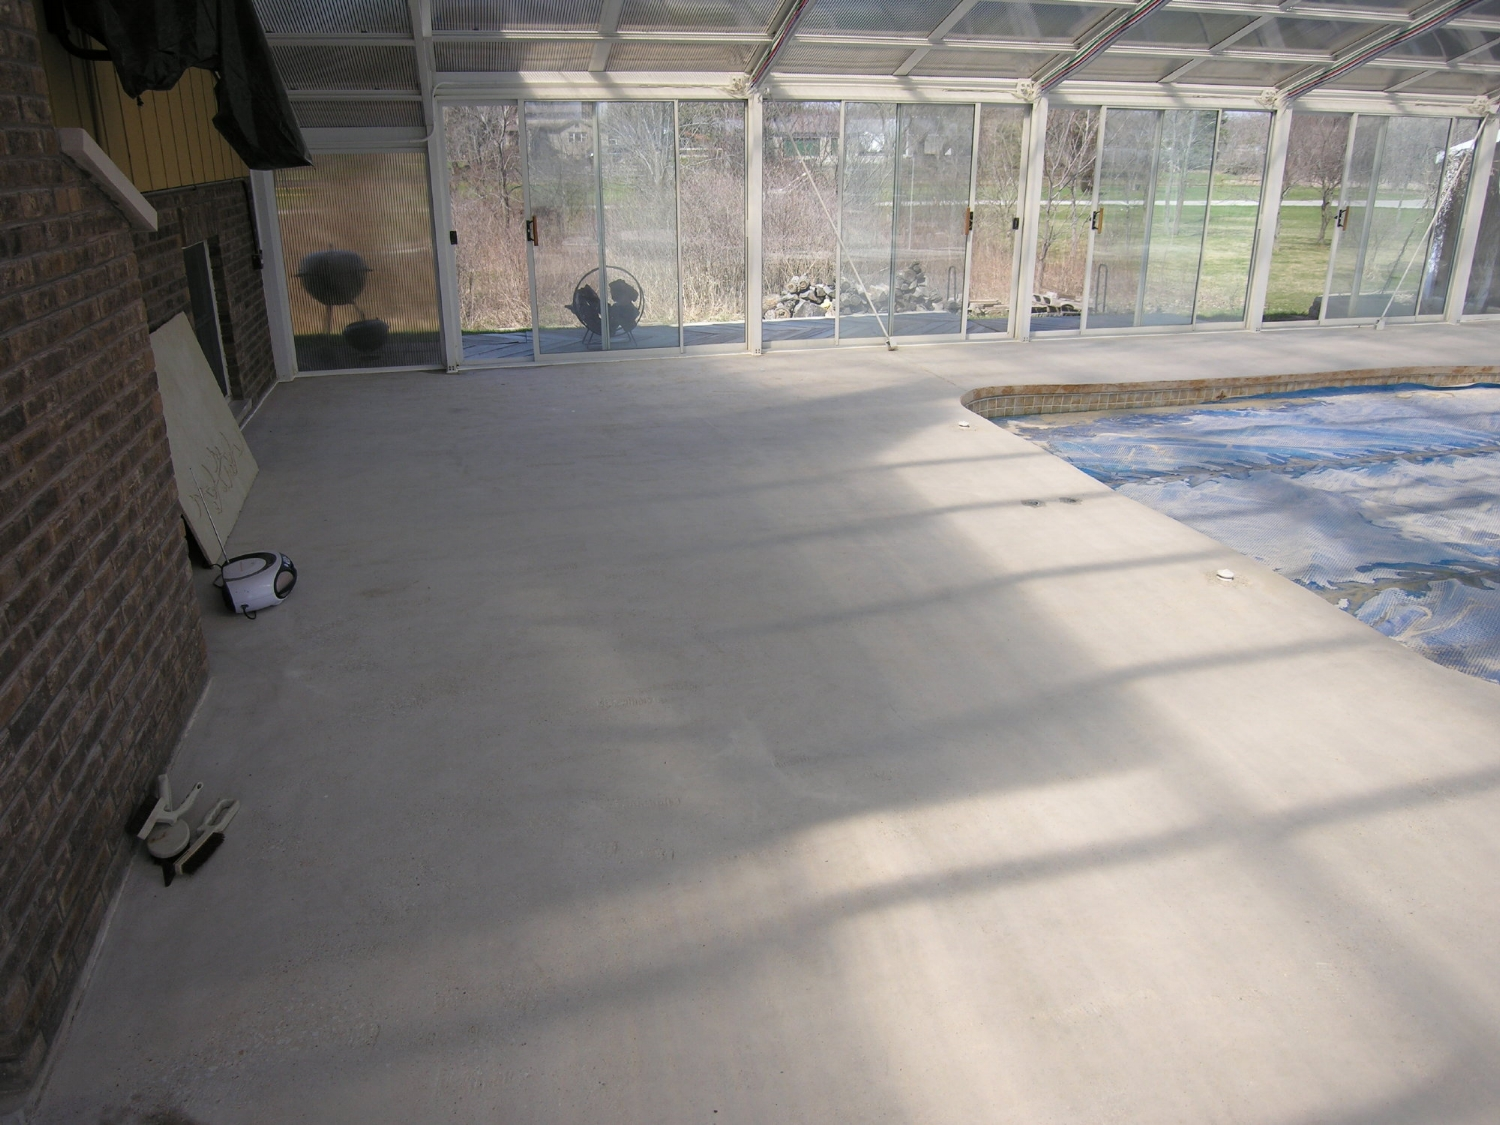 Indoor Concrete Pool Deck After Removing Failed Decorative Cement Overlay With Scarifier And Diamond Grinder